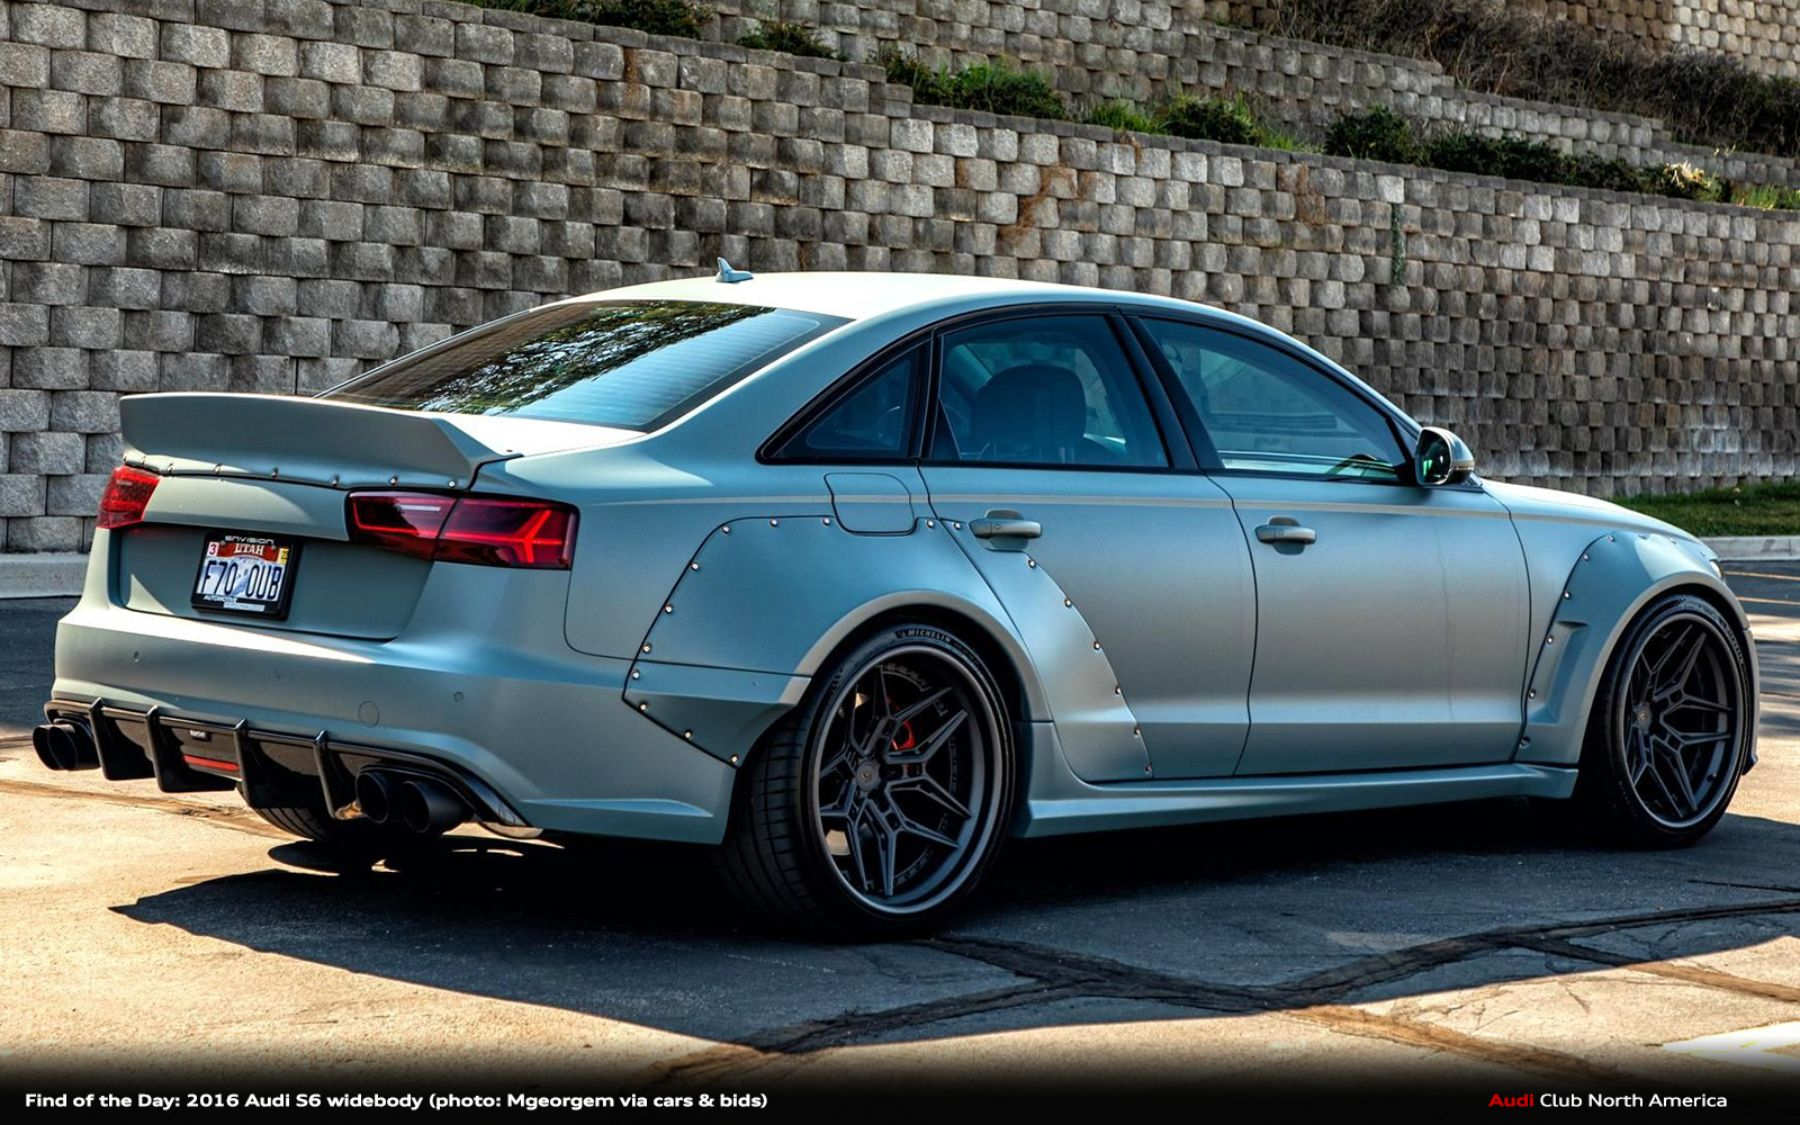 Find of the Day: 2016 Audi S6 Widebody